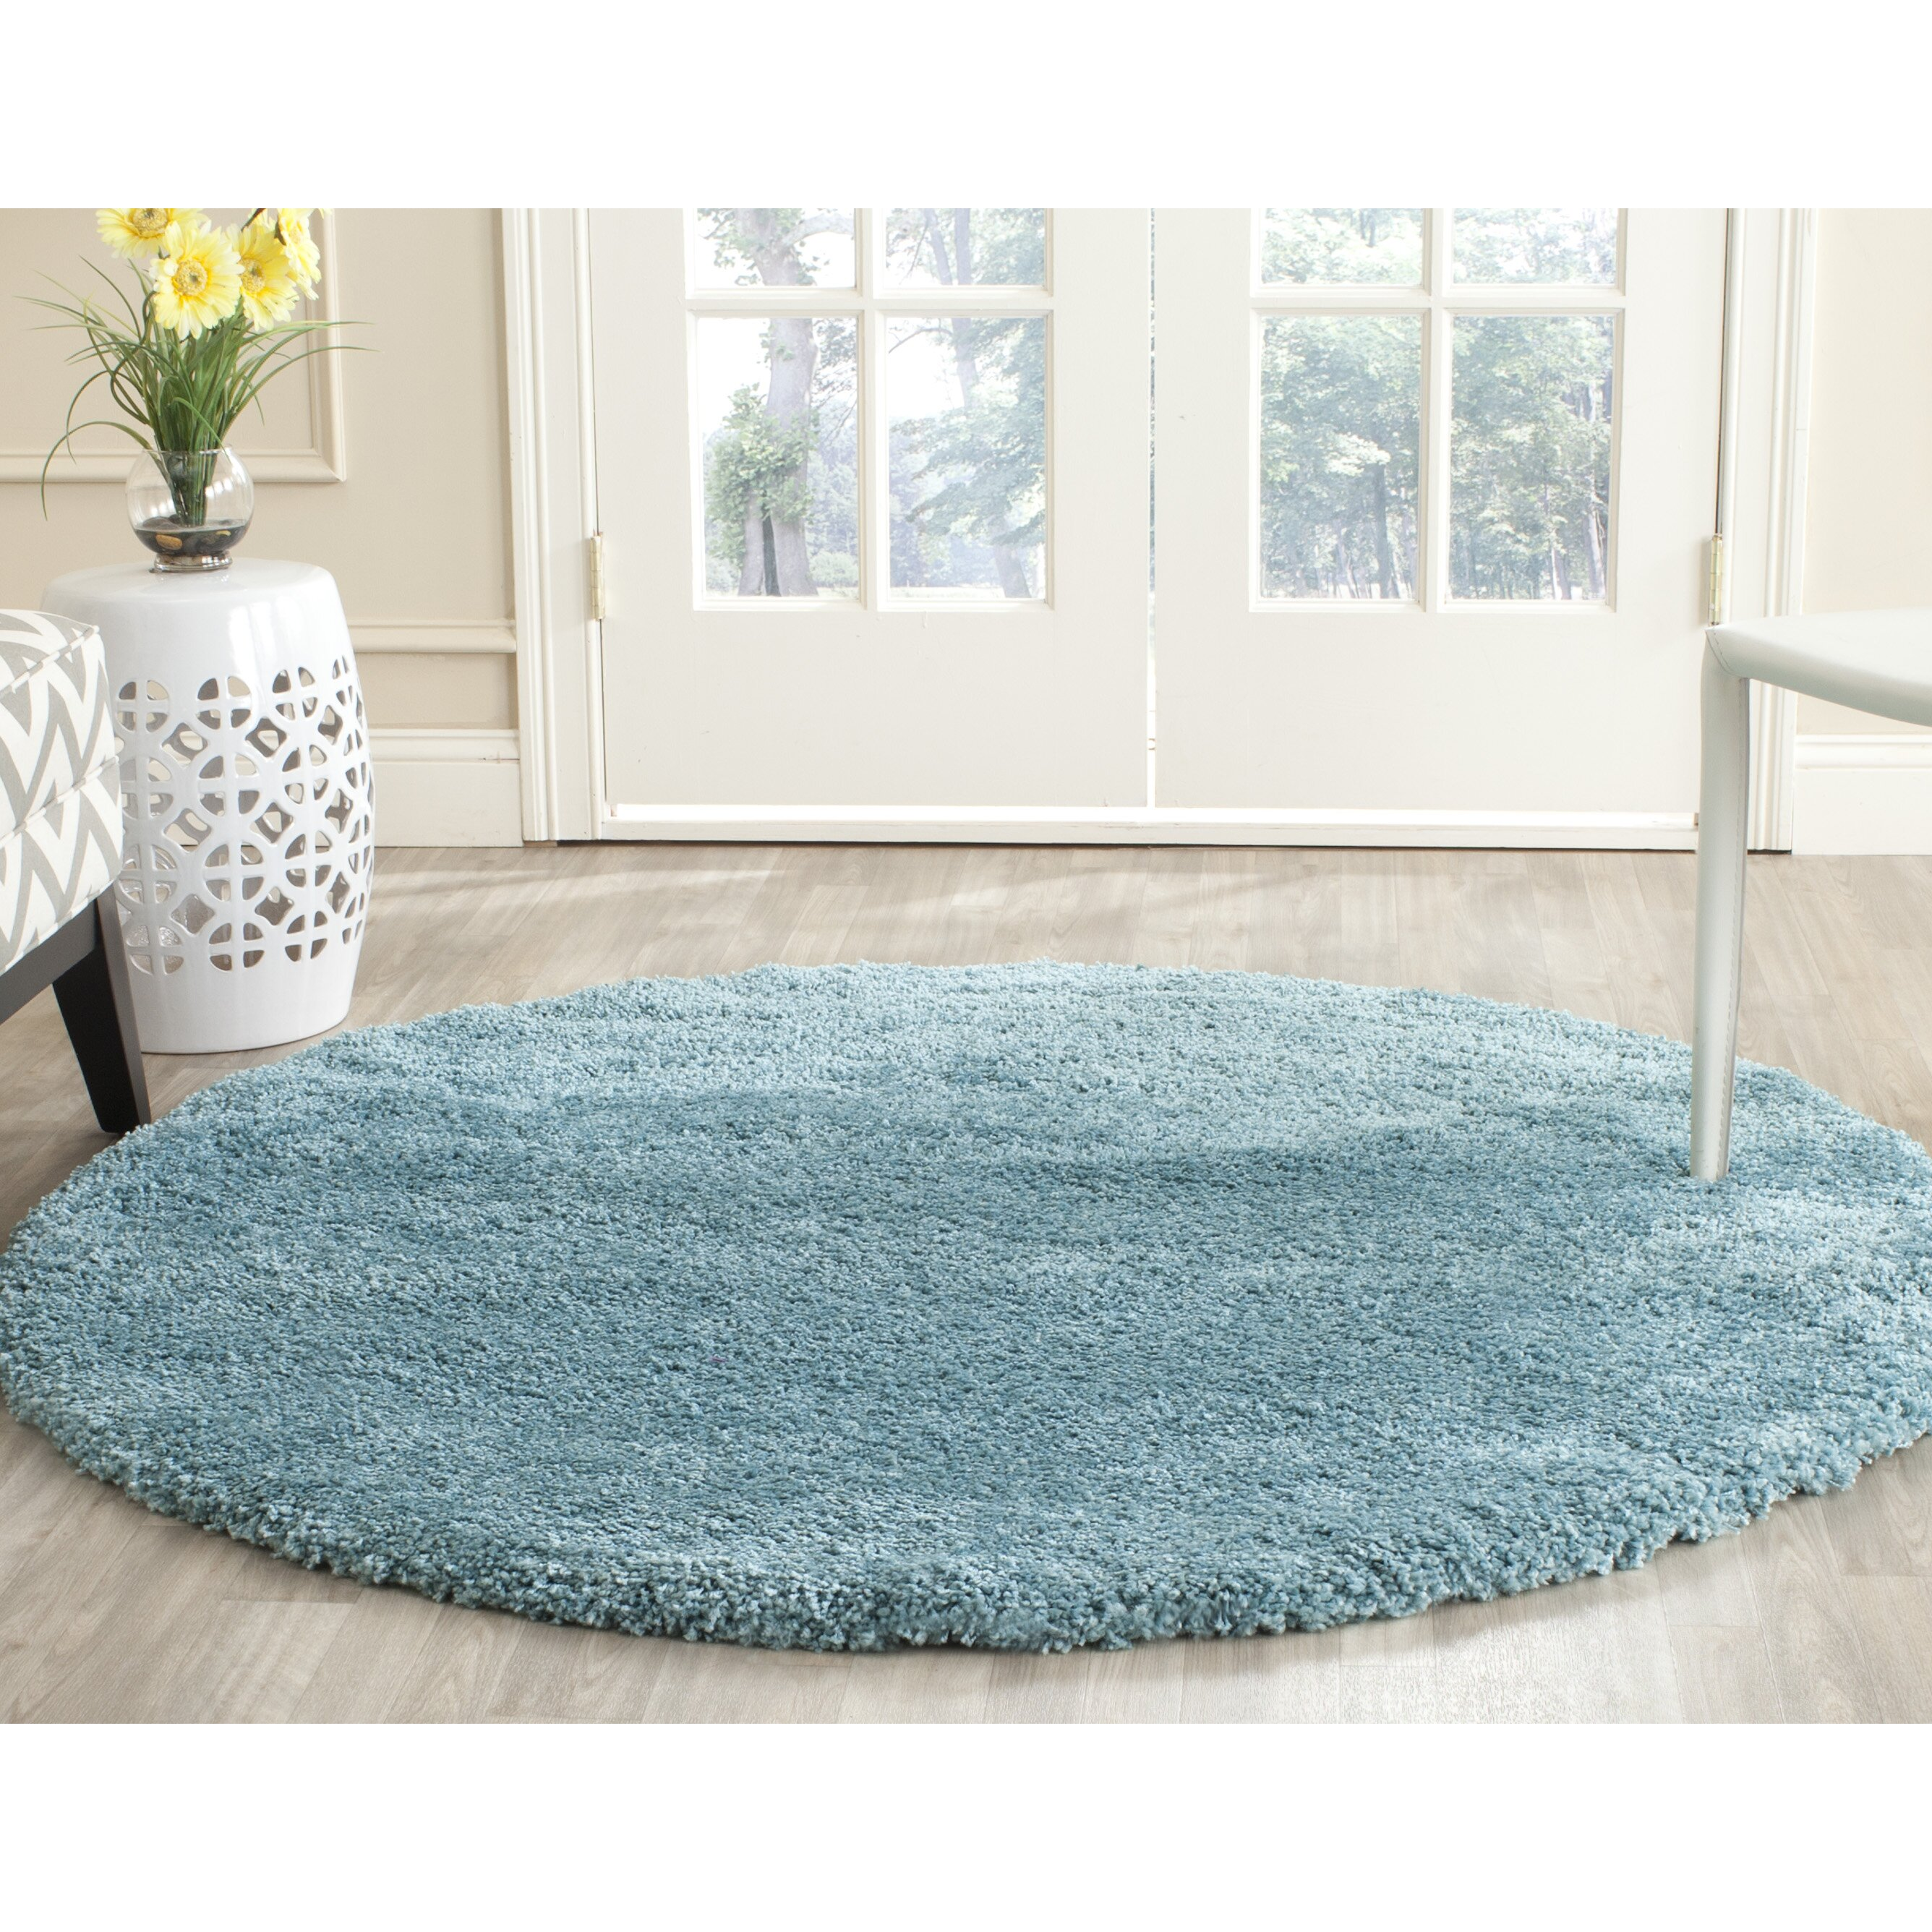 Safavieh Milan Shag Aqua Blue Area Rug & Reviews